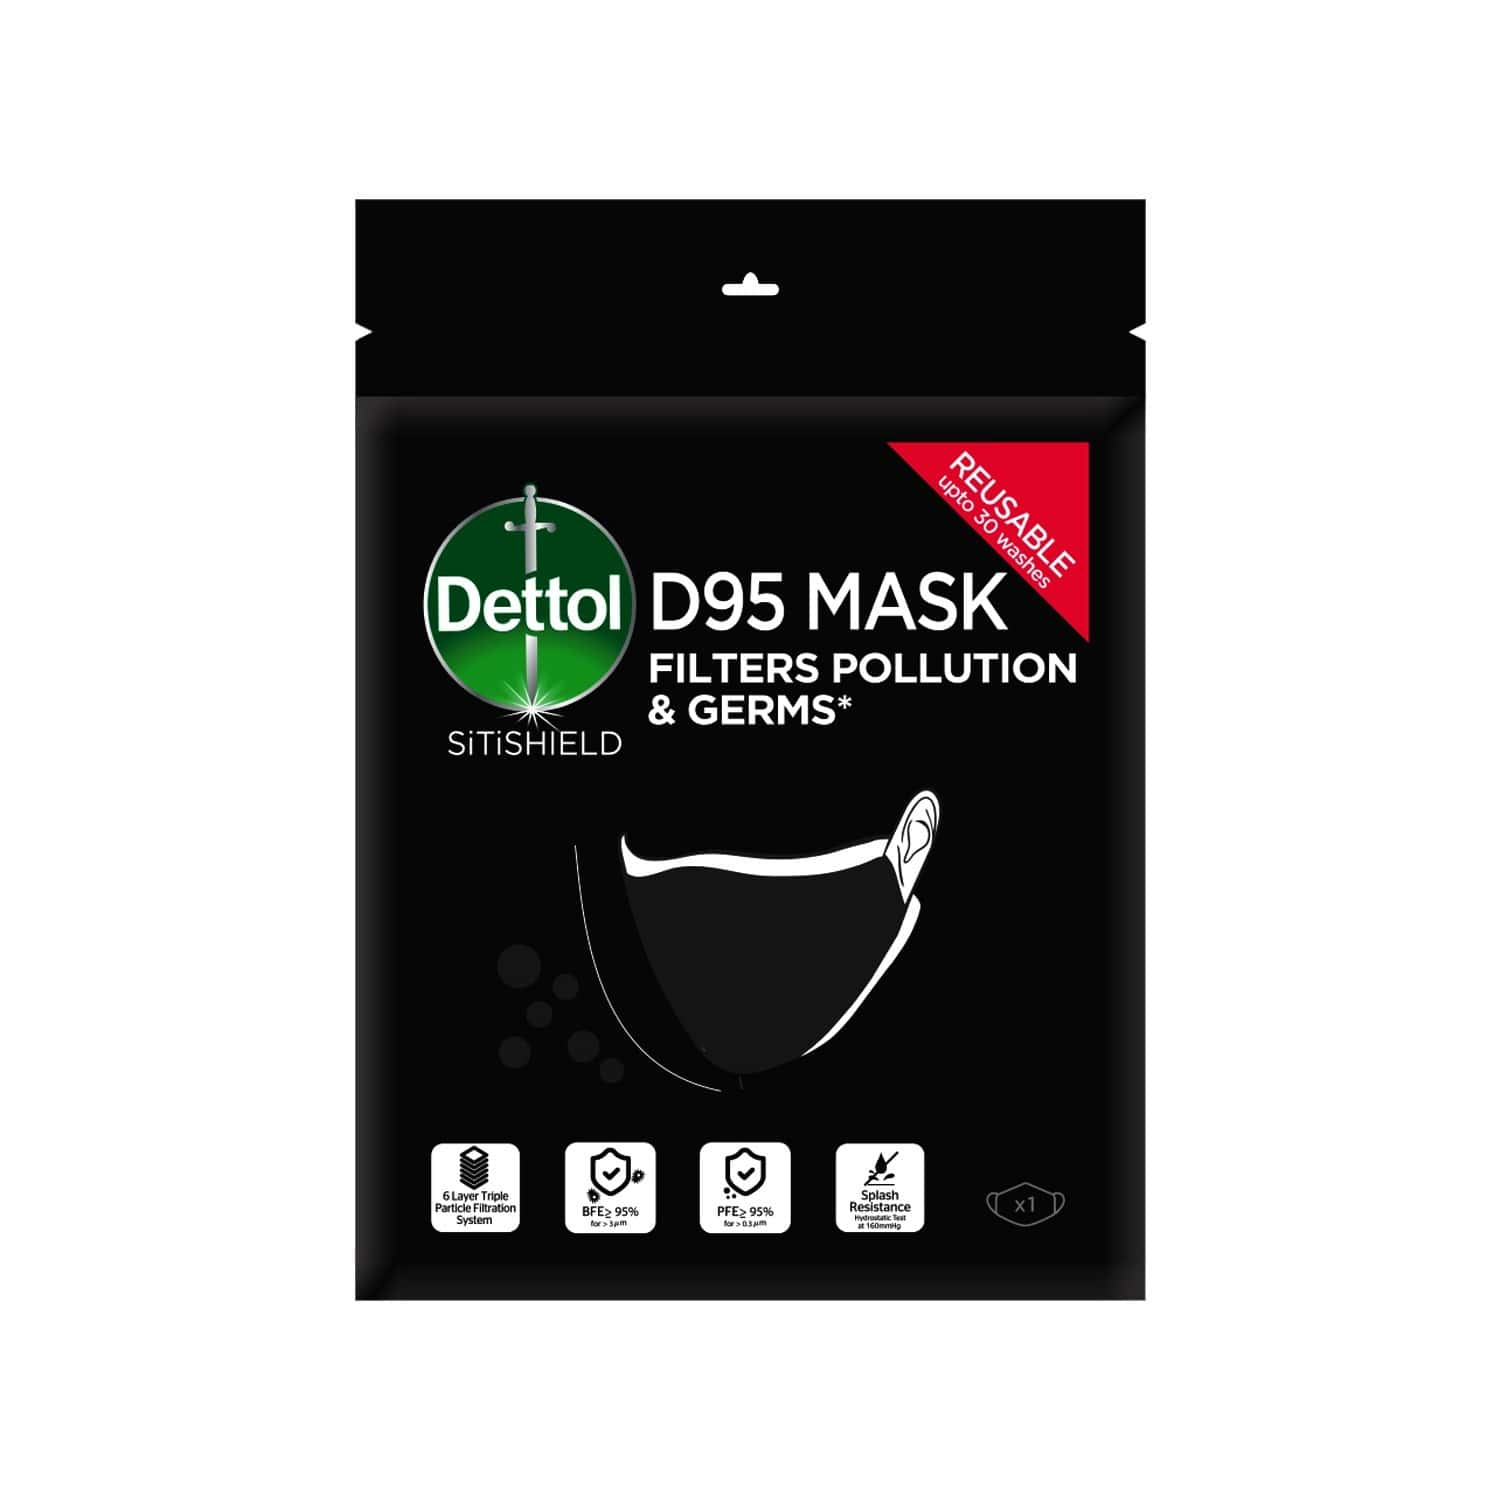 Dettol D95 Mask For Protection From Bacteria, Germs & Pollution Reusable & Washable - Medium - Pack Of 1